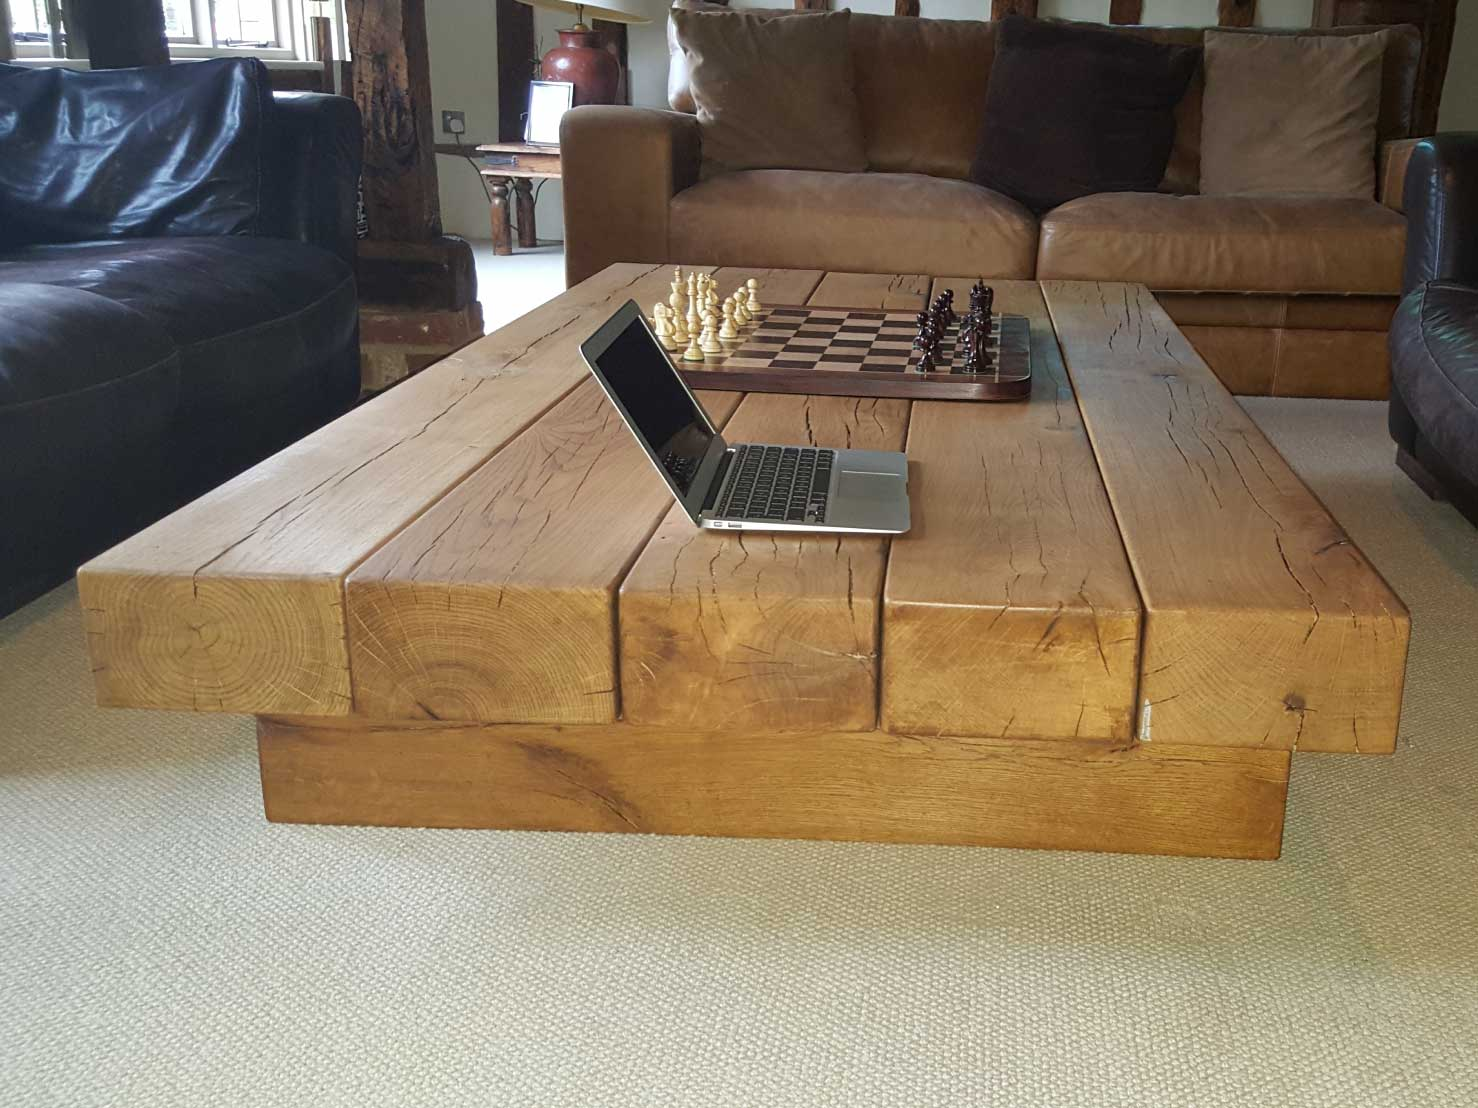 large-oak-beam-coffee-table-uk-made-from-abacus-tables-arabica-classic-style-oak-beam-project-334